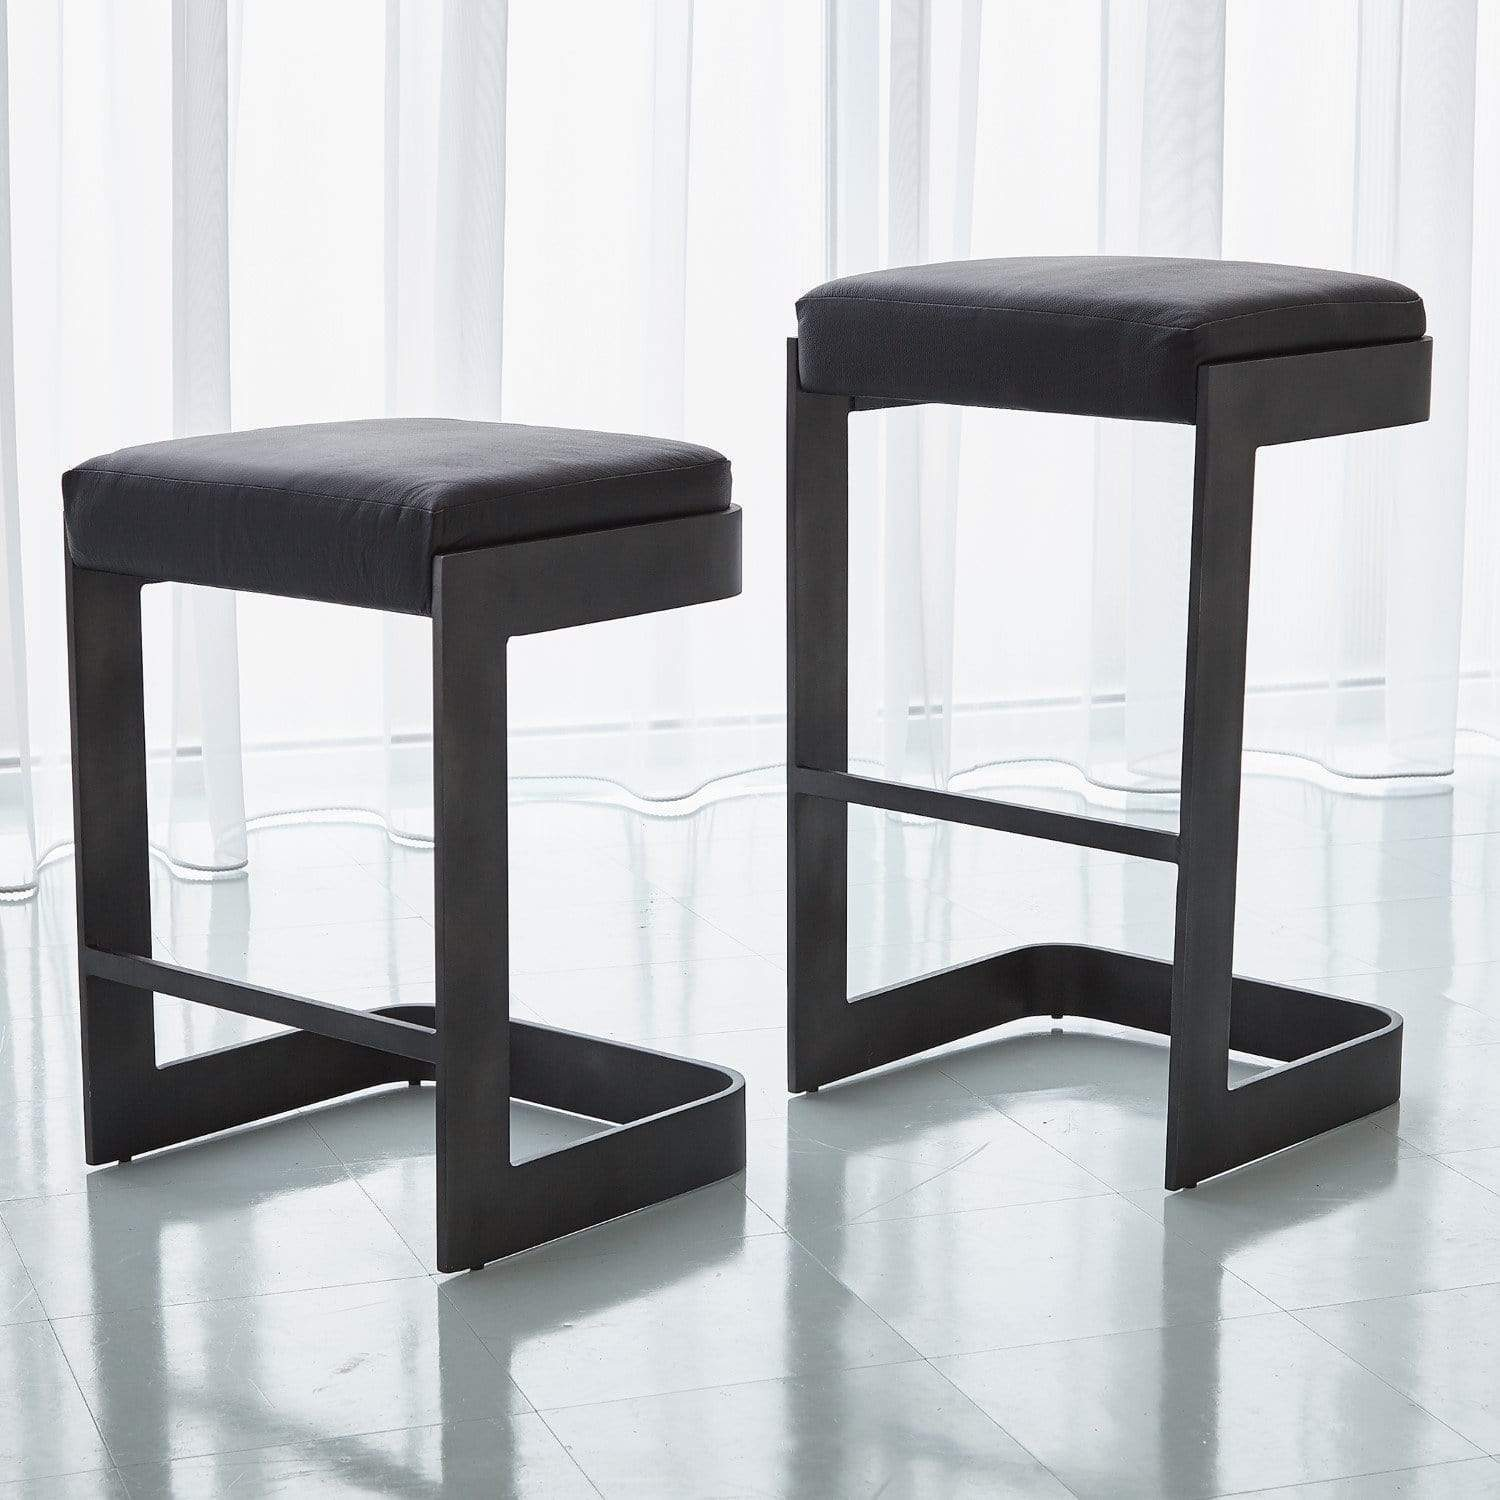 Global Views Global Views Regan Low Bar Stool with Black Leather Graphite 7.90826